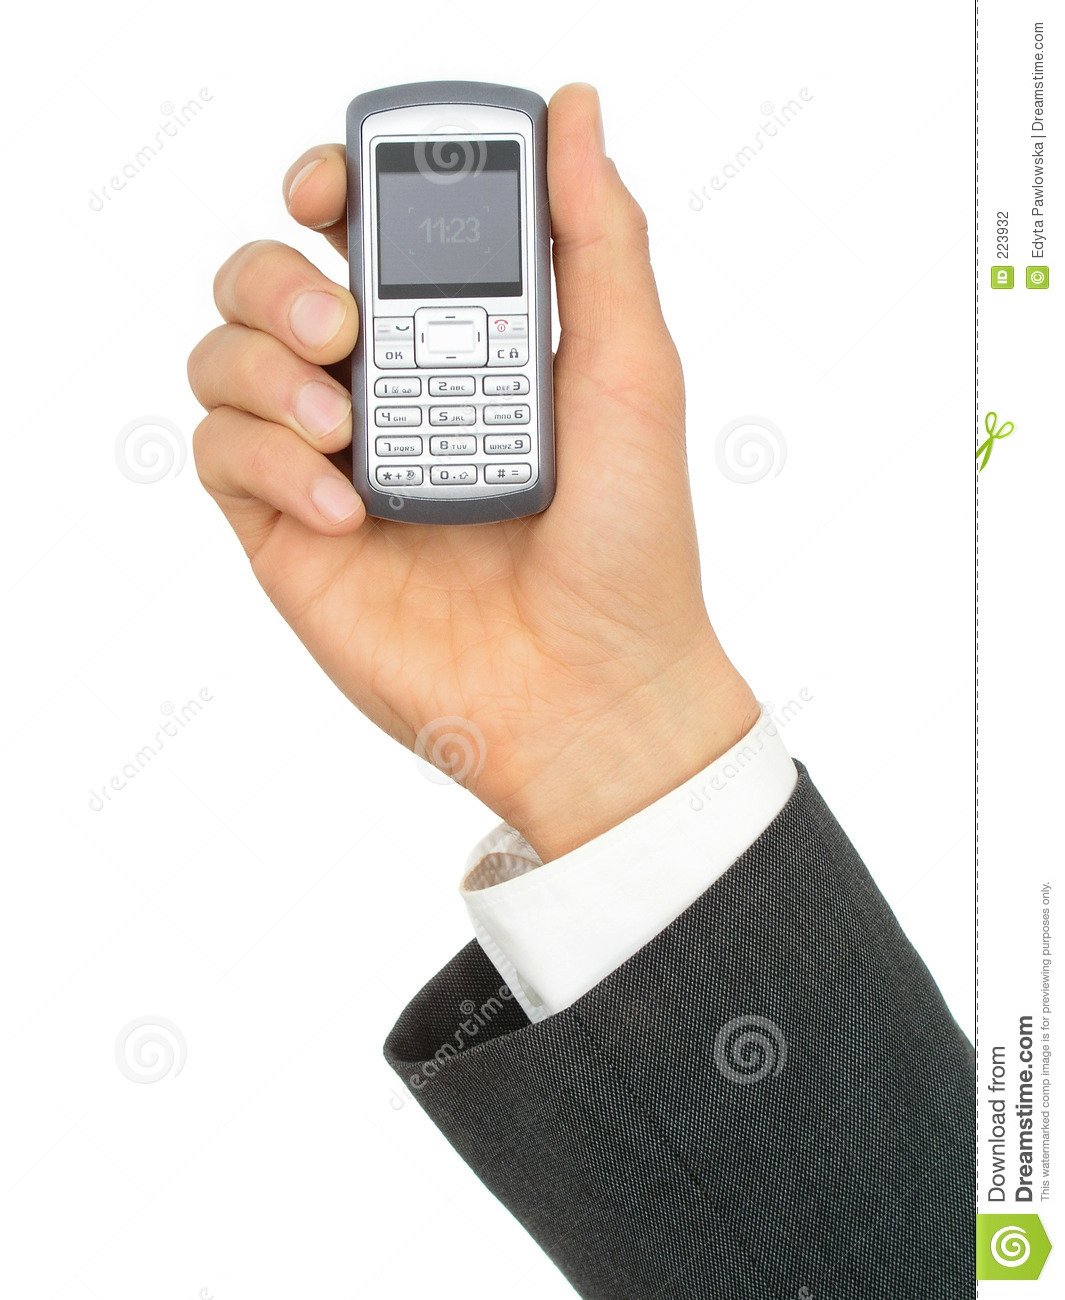 Businessman s Hand Holding a Cell Phone